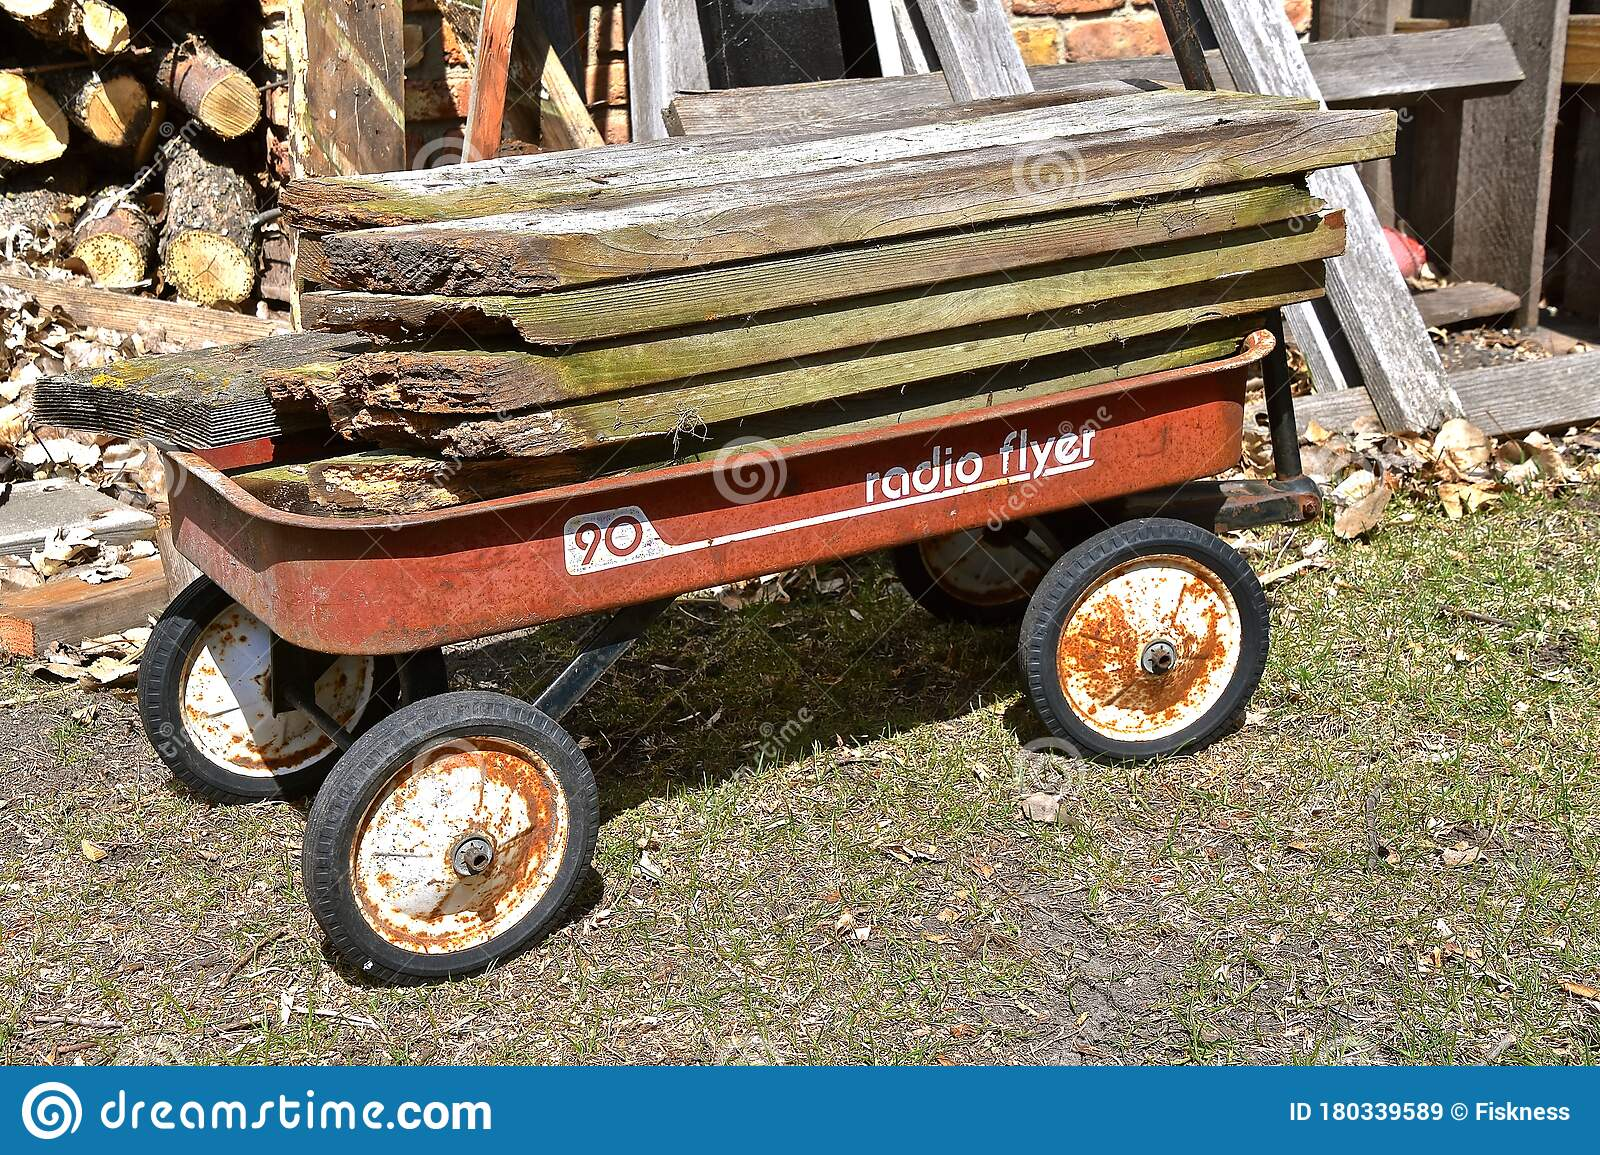 Old Radio Flyer Wagon Photos Free Royalty Free Stock Photos From Dreamstime